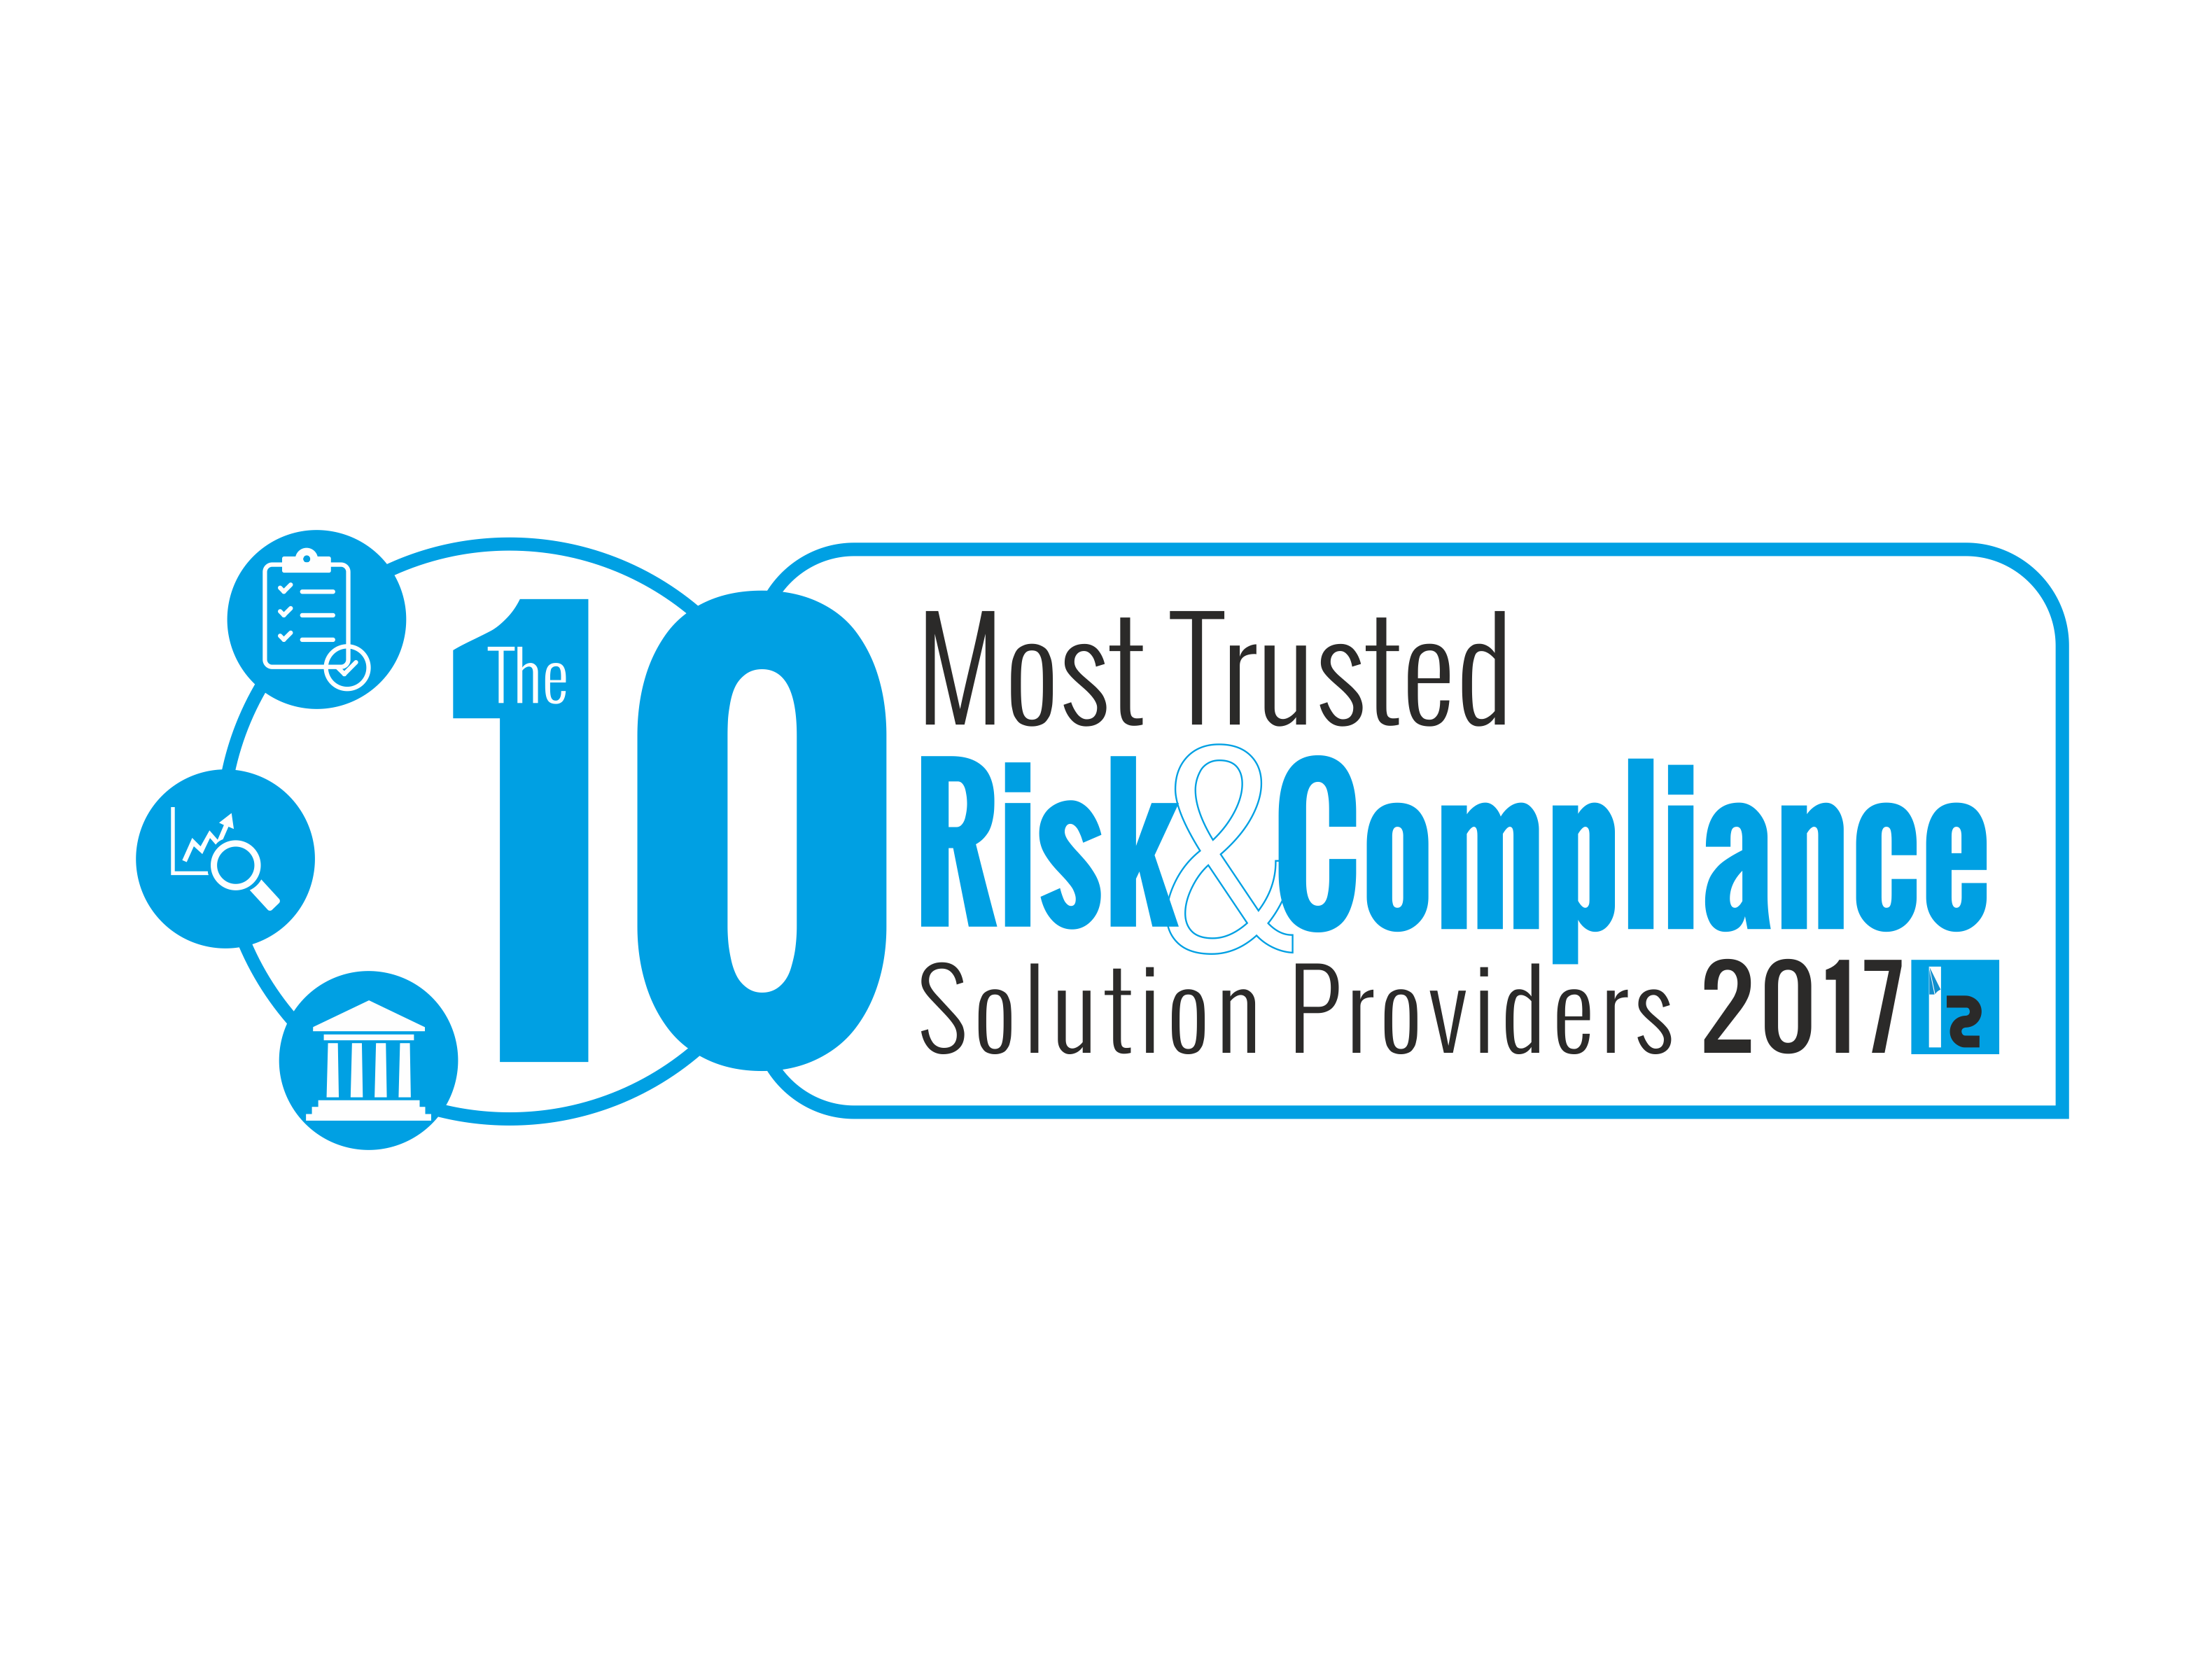 Most Trusted Risk & Compliance Solution Providers 2017